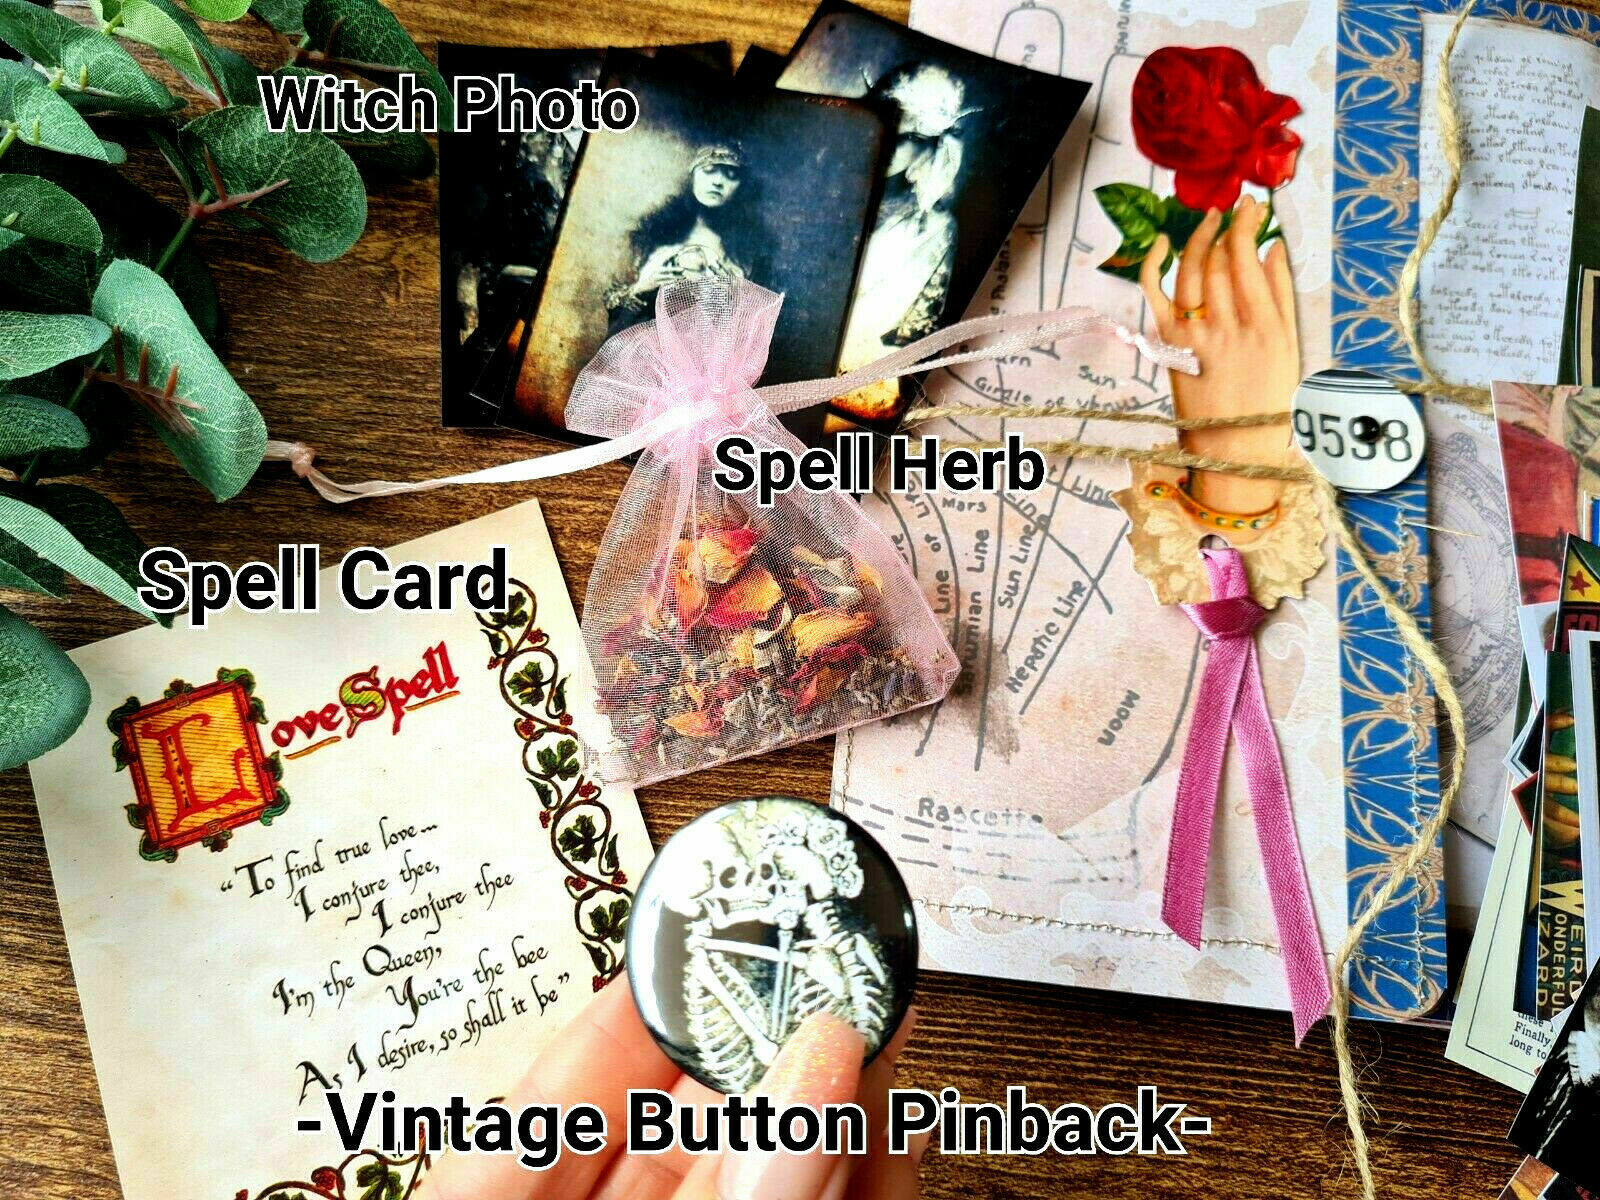 New item Witchcraft Spell Kits